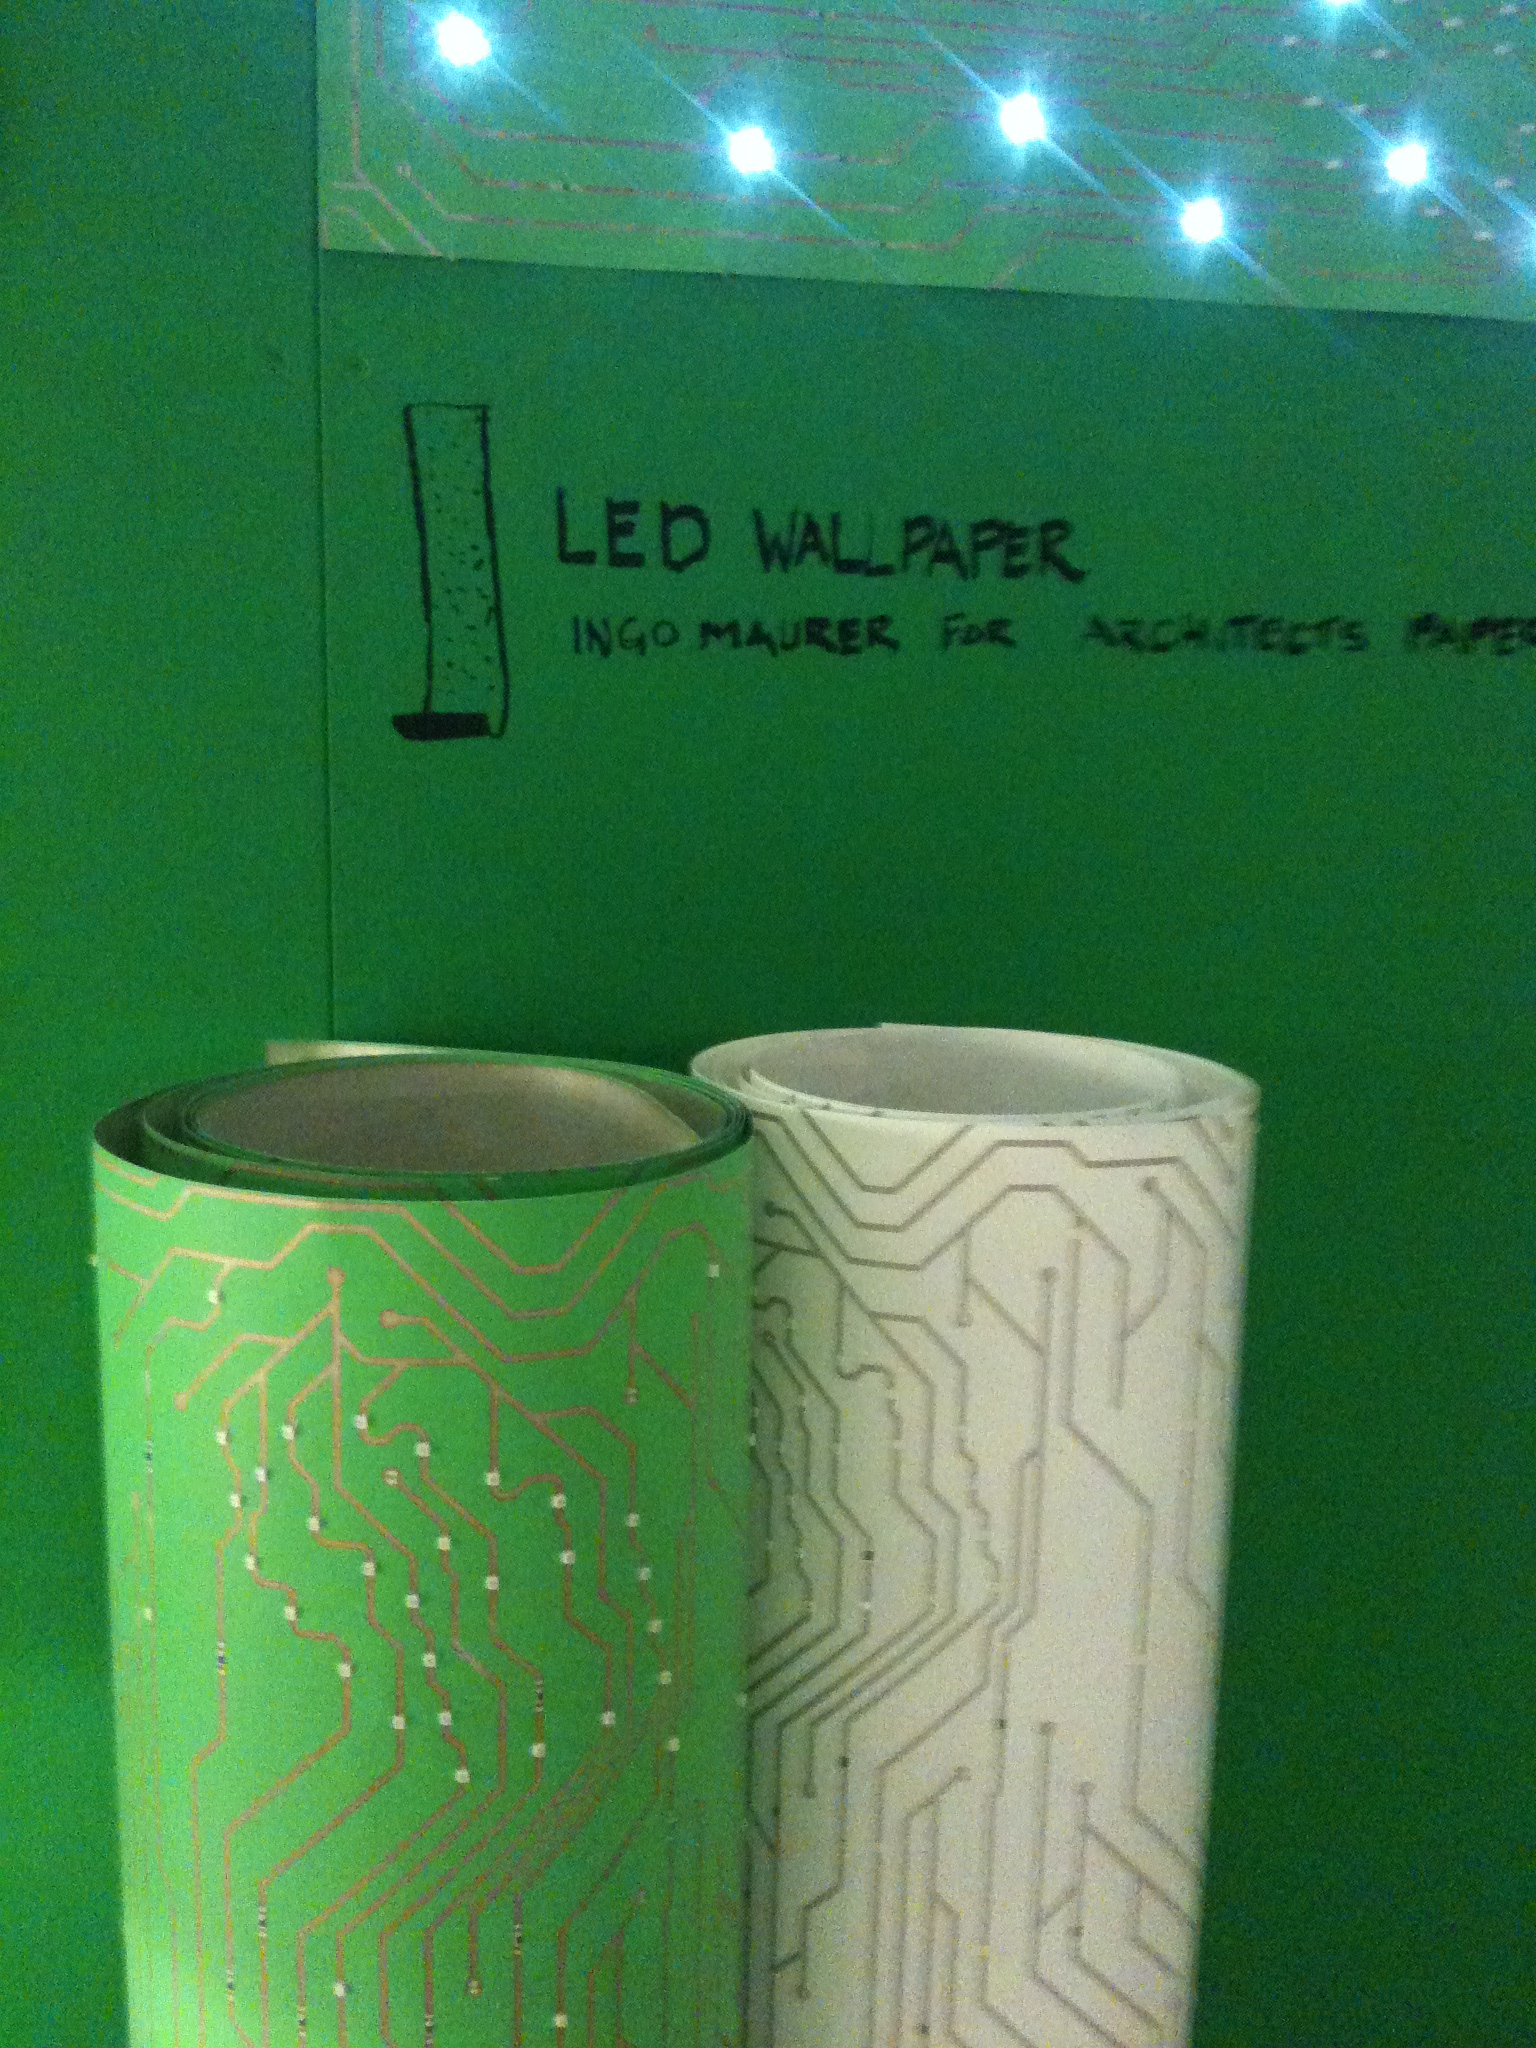 LED wallpaper is here Visible Light Communications 1536x2048